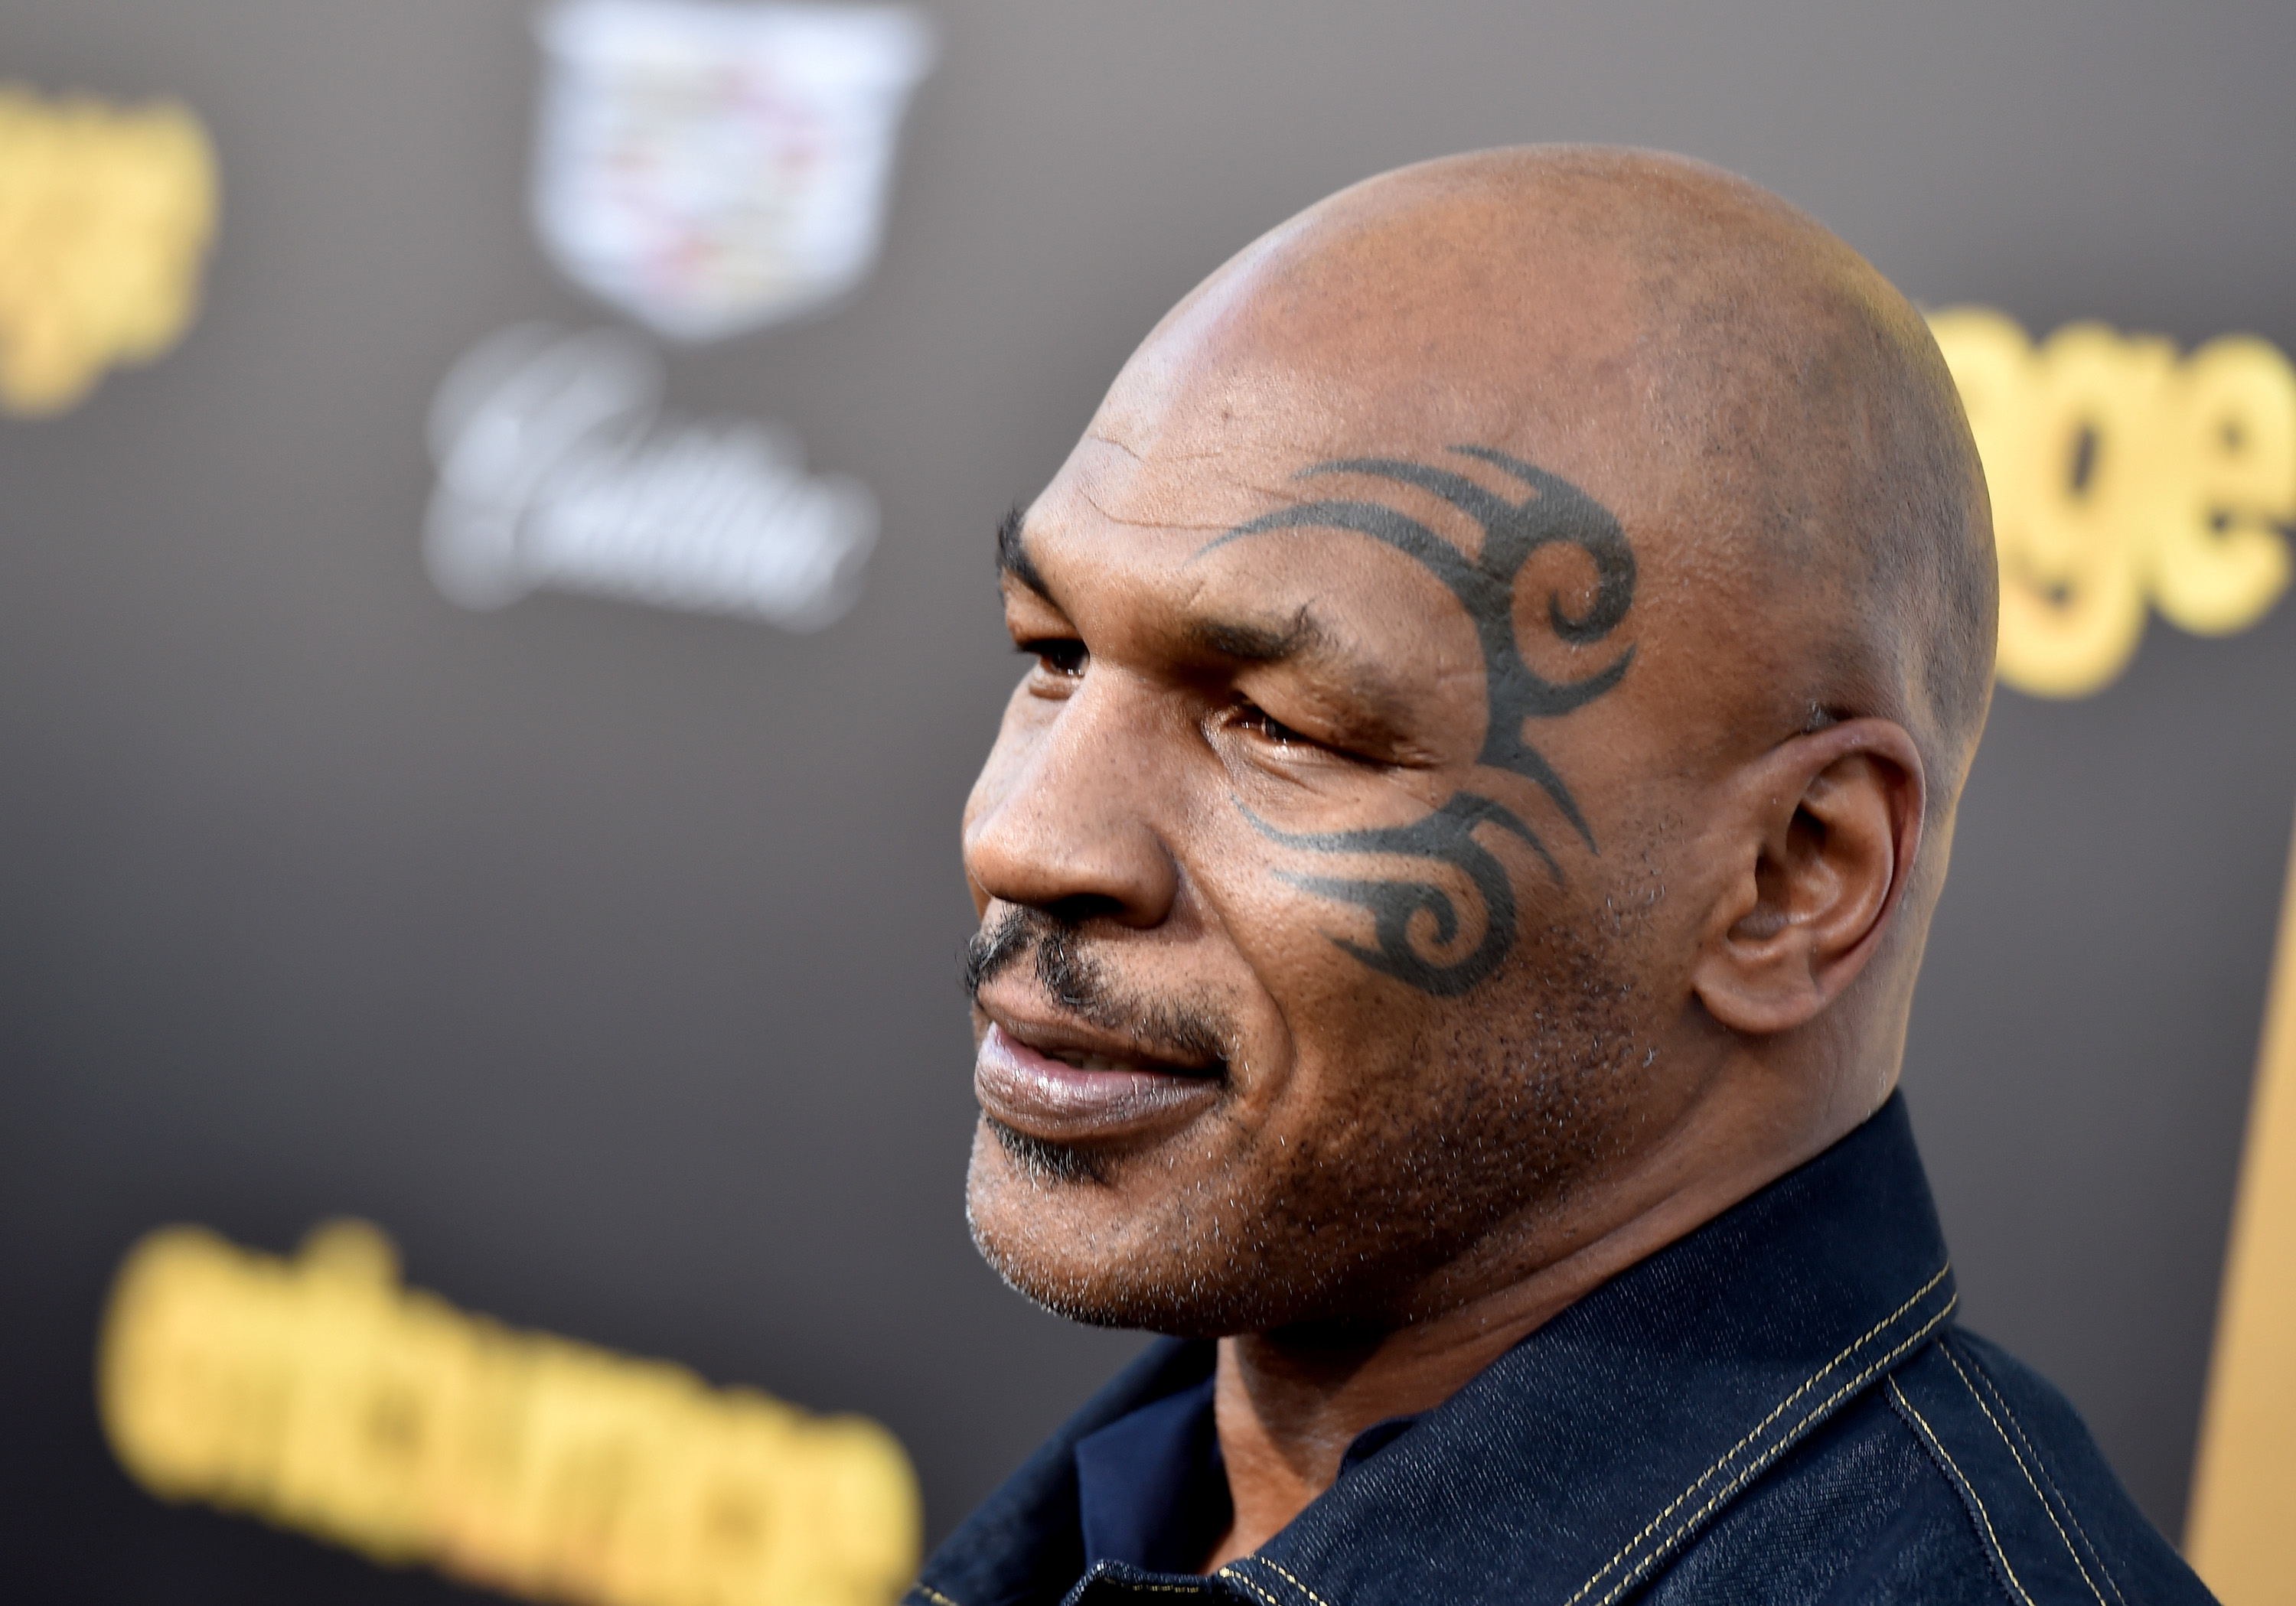 Mike Tyson said he believes death is more glorious than life.